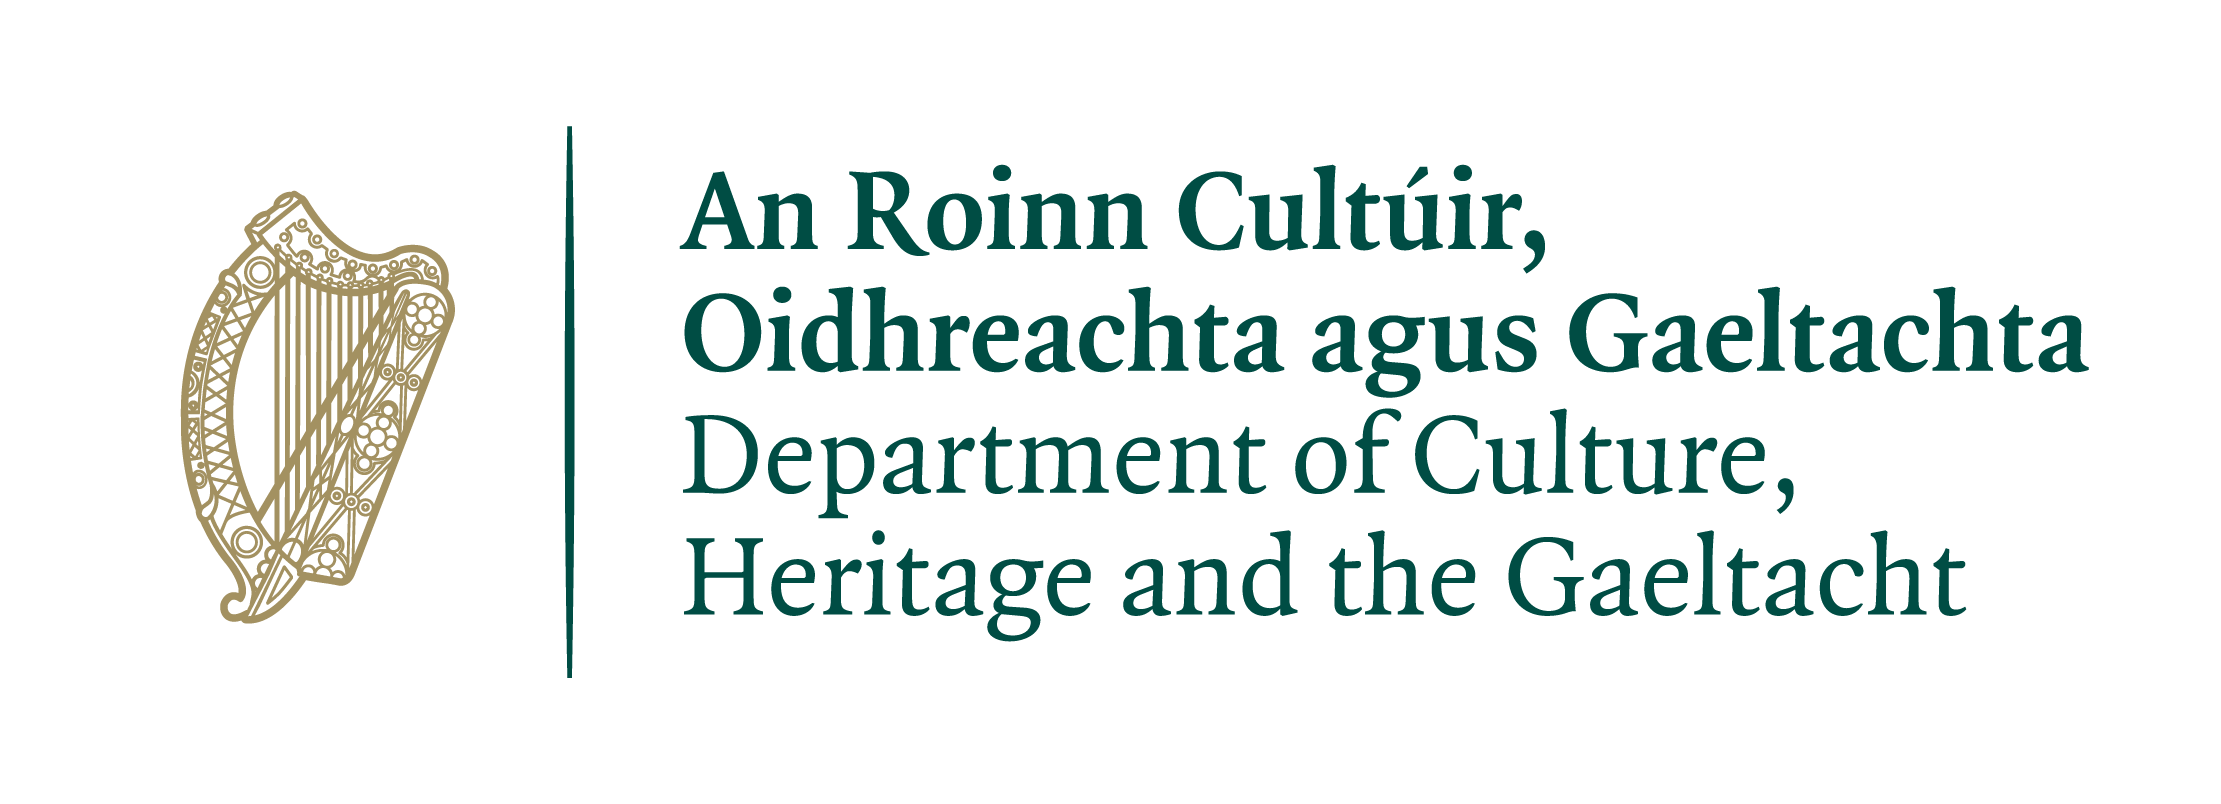 Department of Culture, Heritage and Gaeltacht